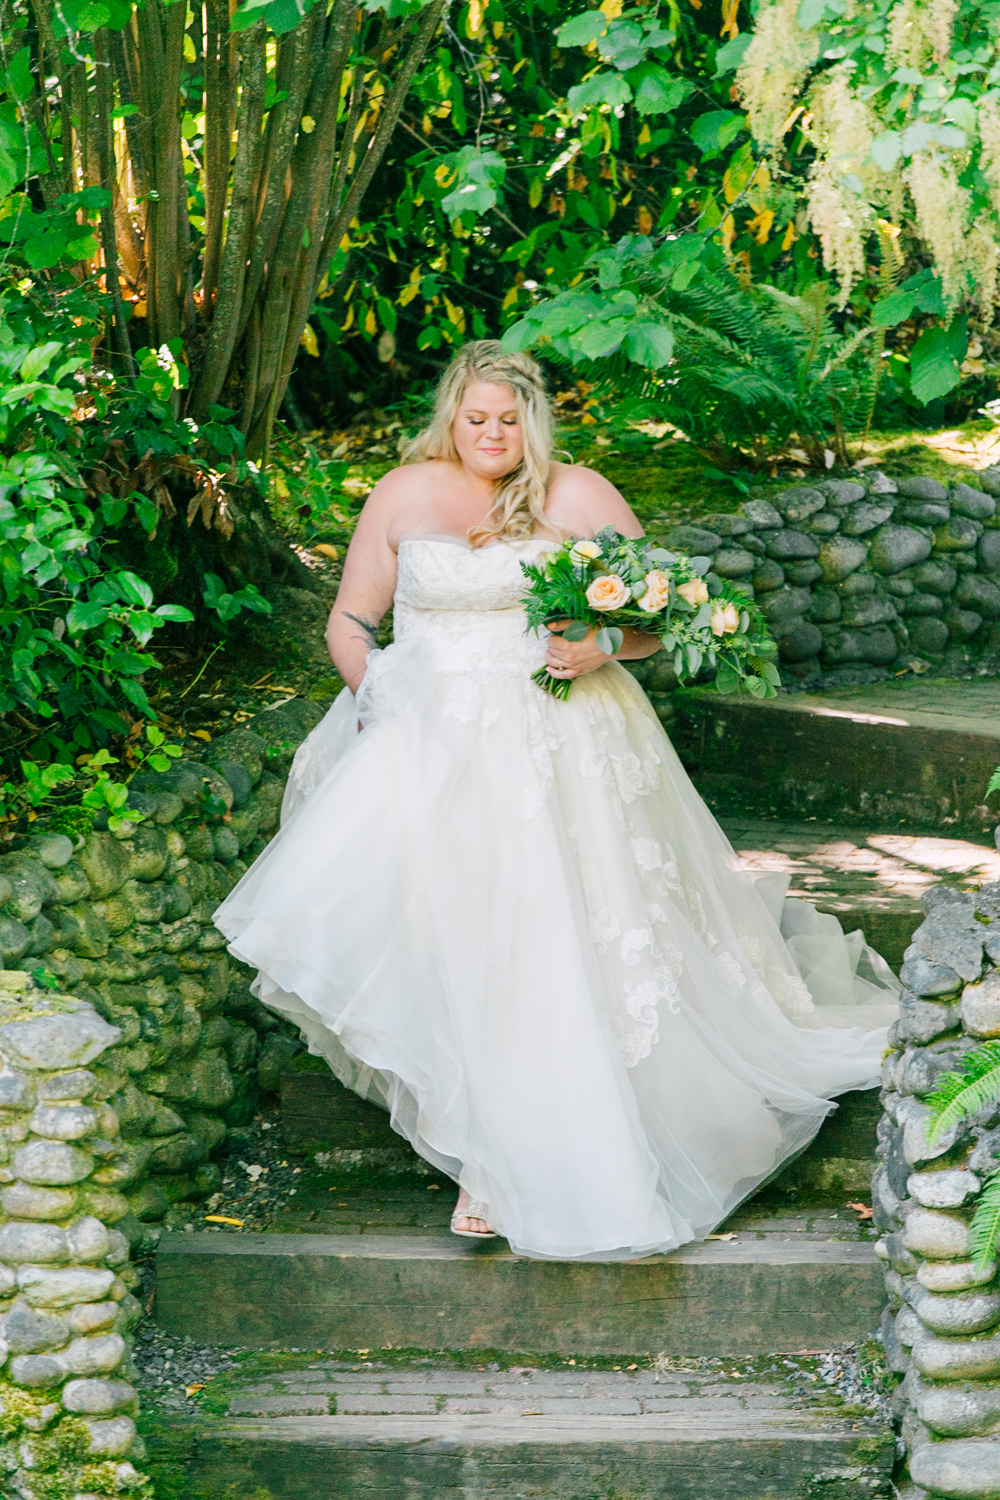 055-seattle-bastyr-grotto-wedding-katheryn-moran-photography-ashley-zach.jpg